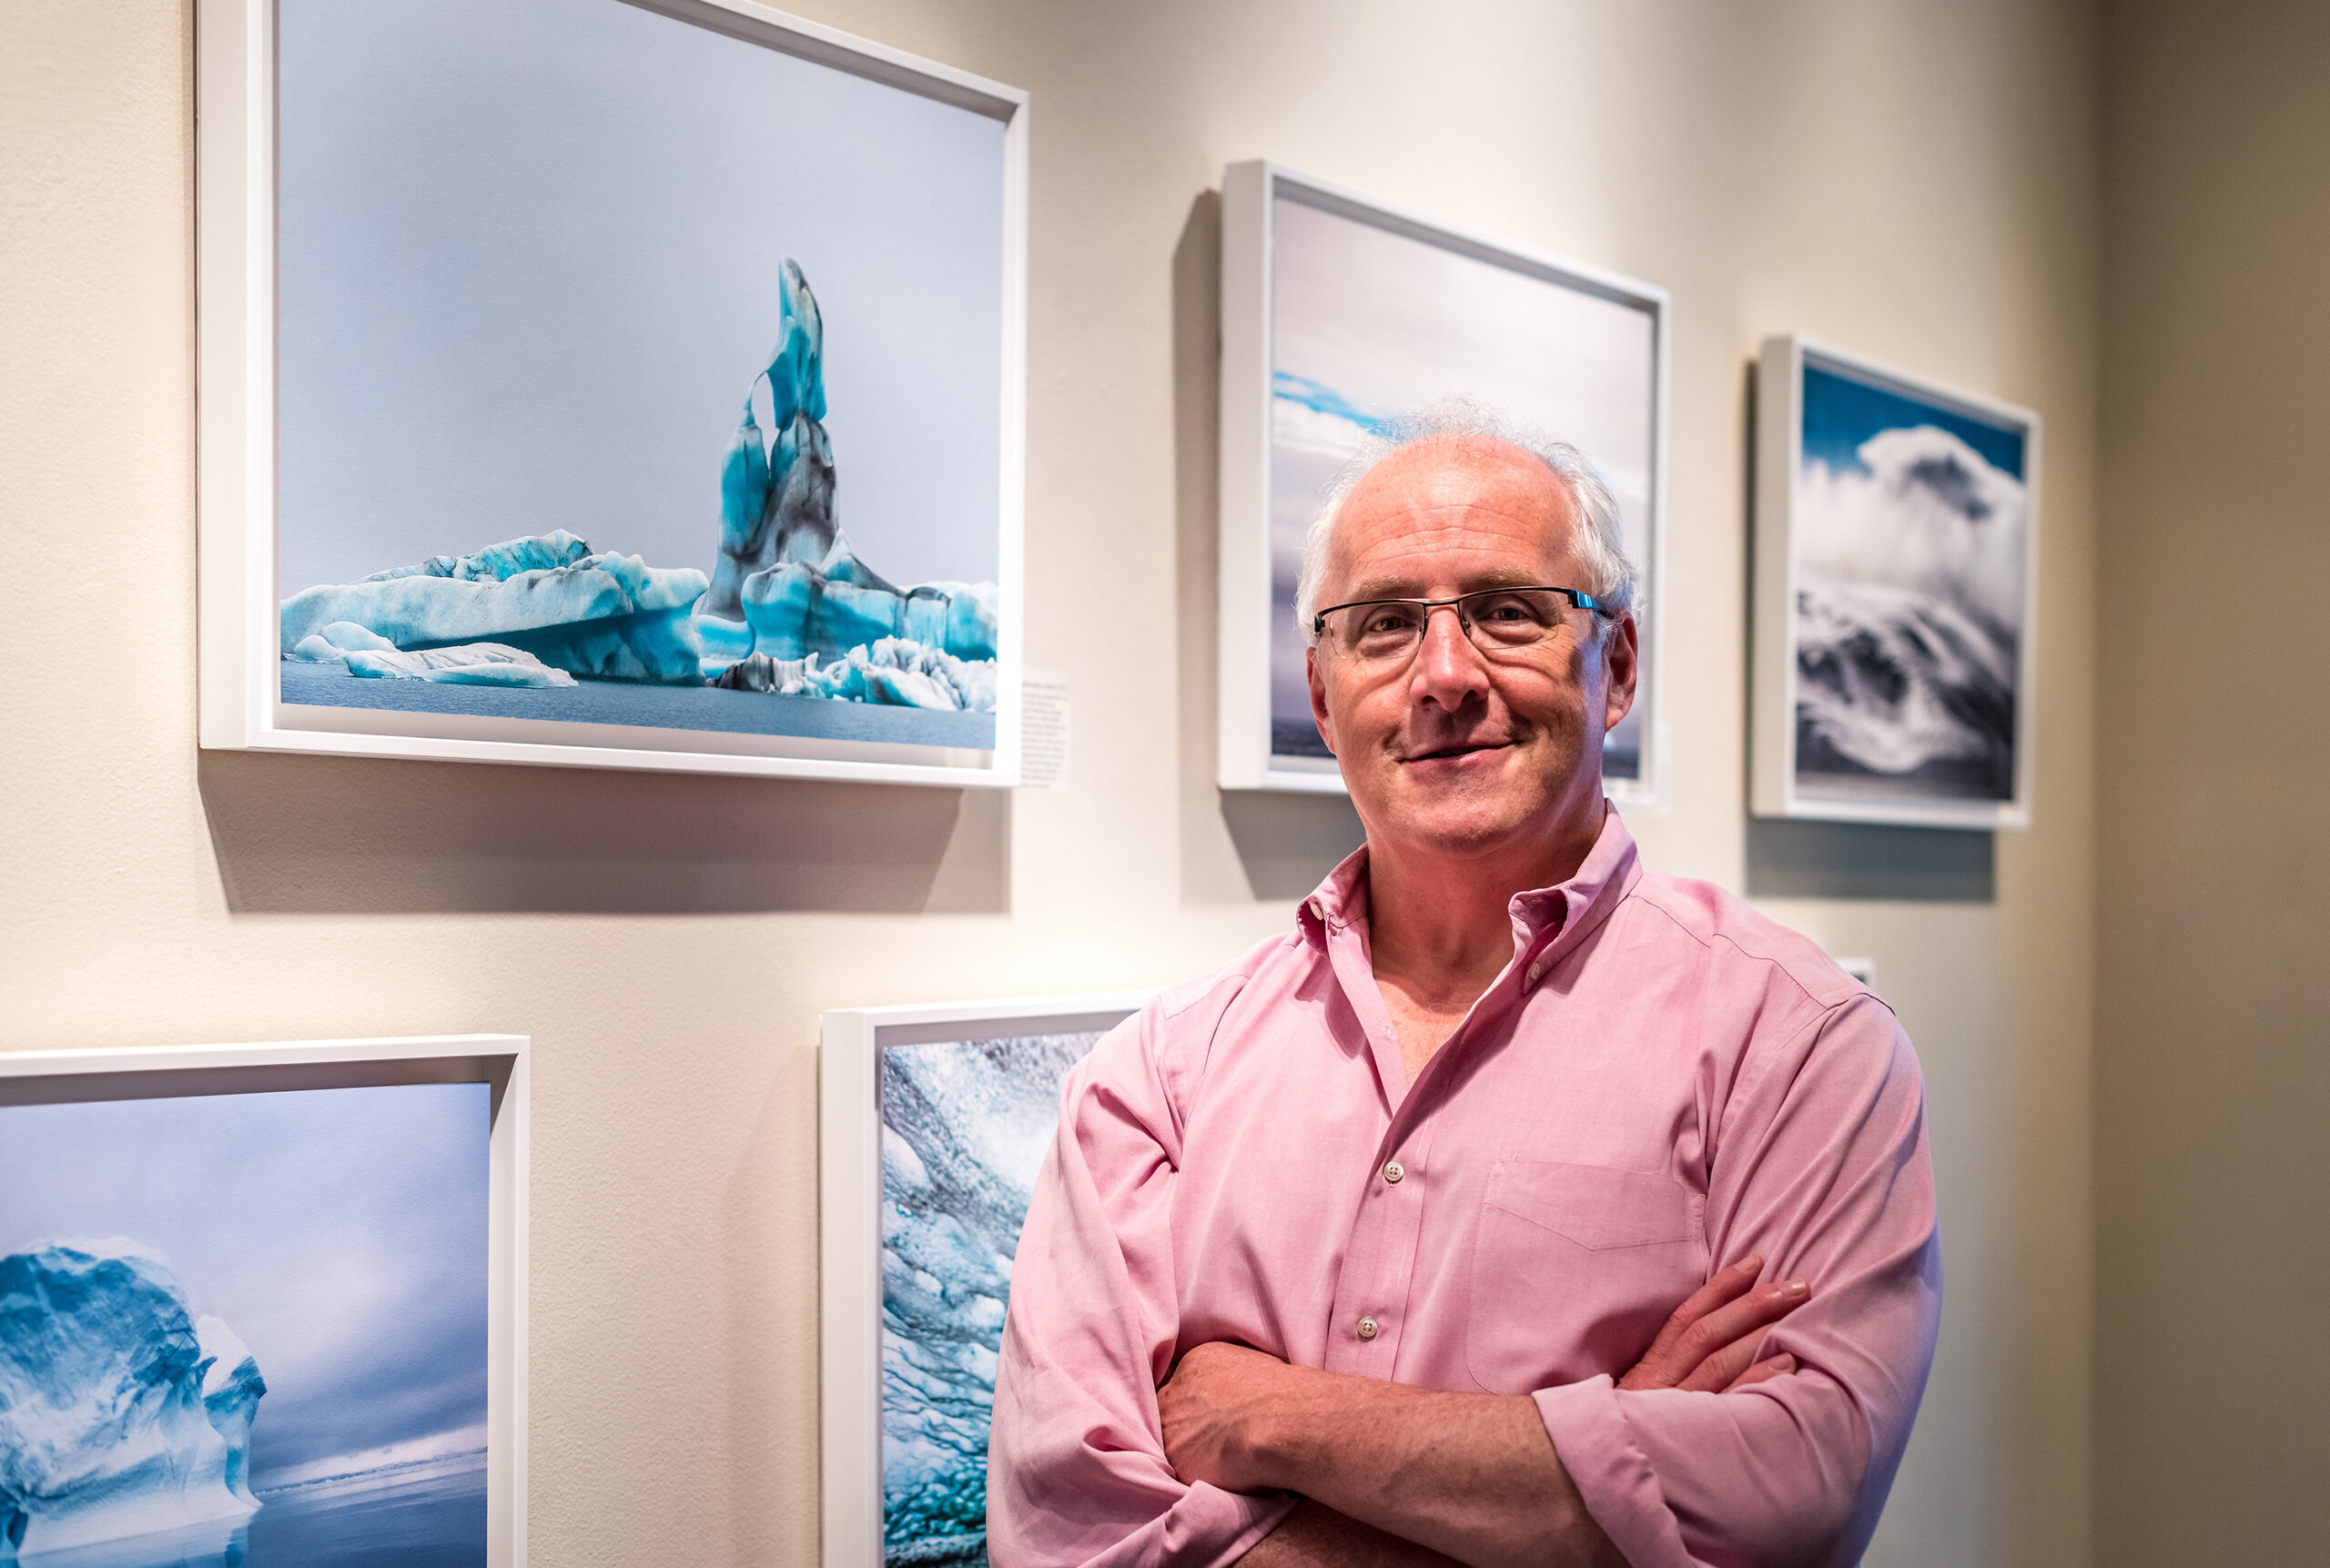 A man stands in front of a gallery wall with images of icebergs with arms folded in front of him